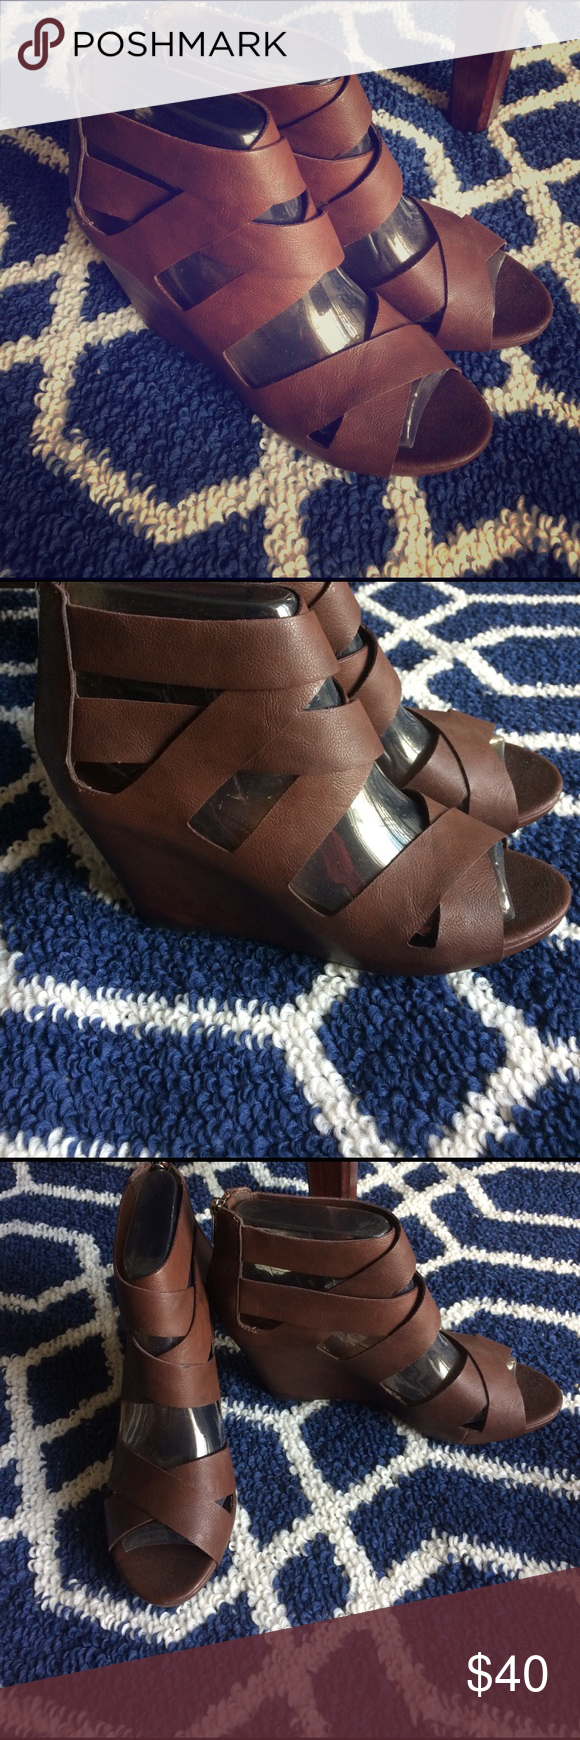 New Direction Lola Gladiator Wedges - Dark Brown BRAND NEW. The perfect wedge for the summer. Made of synthetic fiber with a heel height of 3 1/2 inches and are a size 8.5M. They have a full zip back.  Sexy and trendy they would pair well with any outfit, casual or dressy. new directions Shoes Wedges